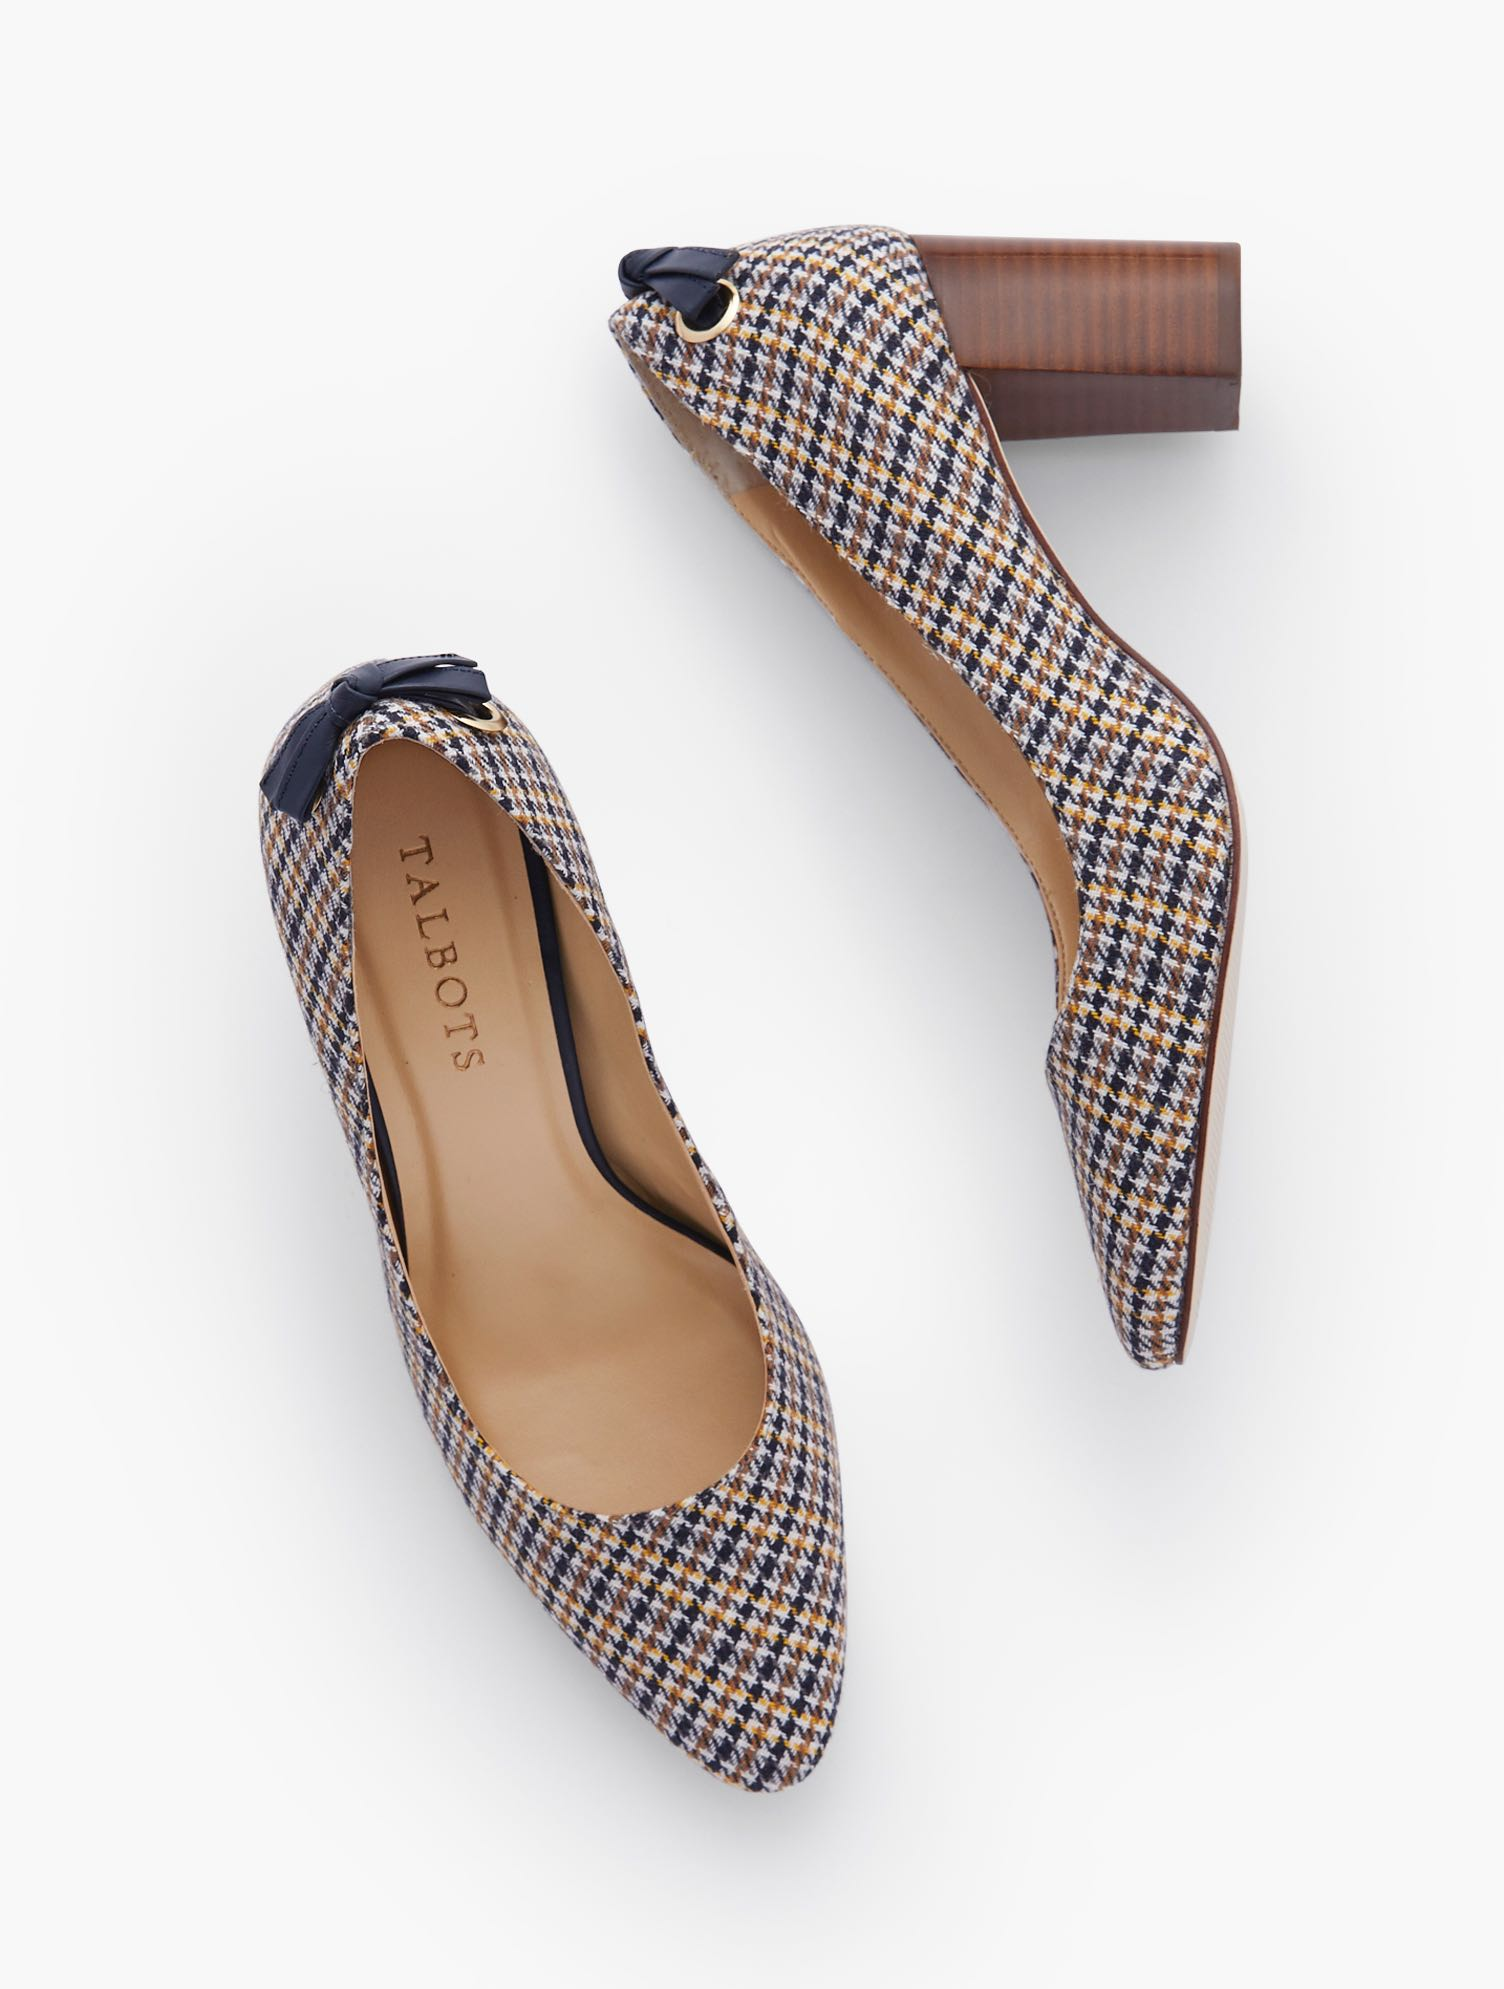 Our classic Kelsey Block Heel Pumps. Tie detail at back adds an extra dose of fashion interest. In elegant houndstooth. Features Gift Box/Gift Wrap is not available for this item 3MM Memory foam footbed 3 inches heel Back tie detail Almond toe Imported Material: 34% Acrylic, 33% Polyolefin, 19% Polyester, 10% Wool, 4% Other Fibers Kelsey Tie Detail Block Heel Pumps - Houndstooth - Ivory - 11M Talbots